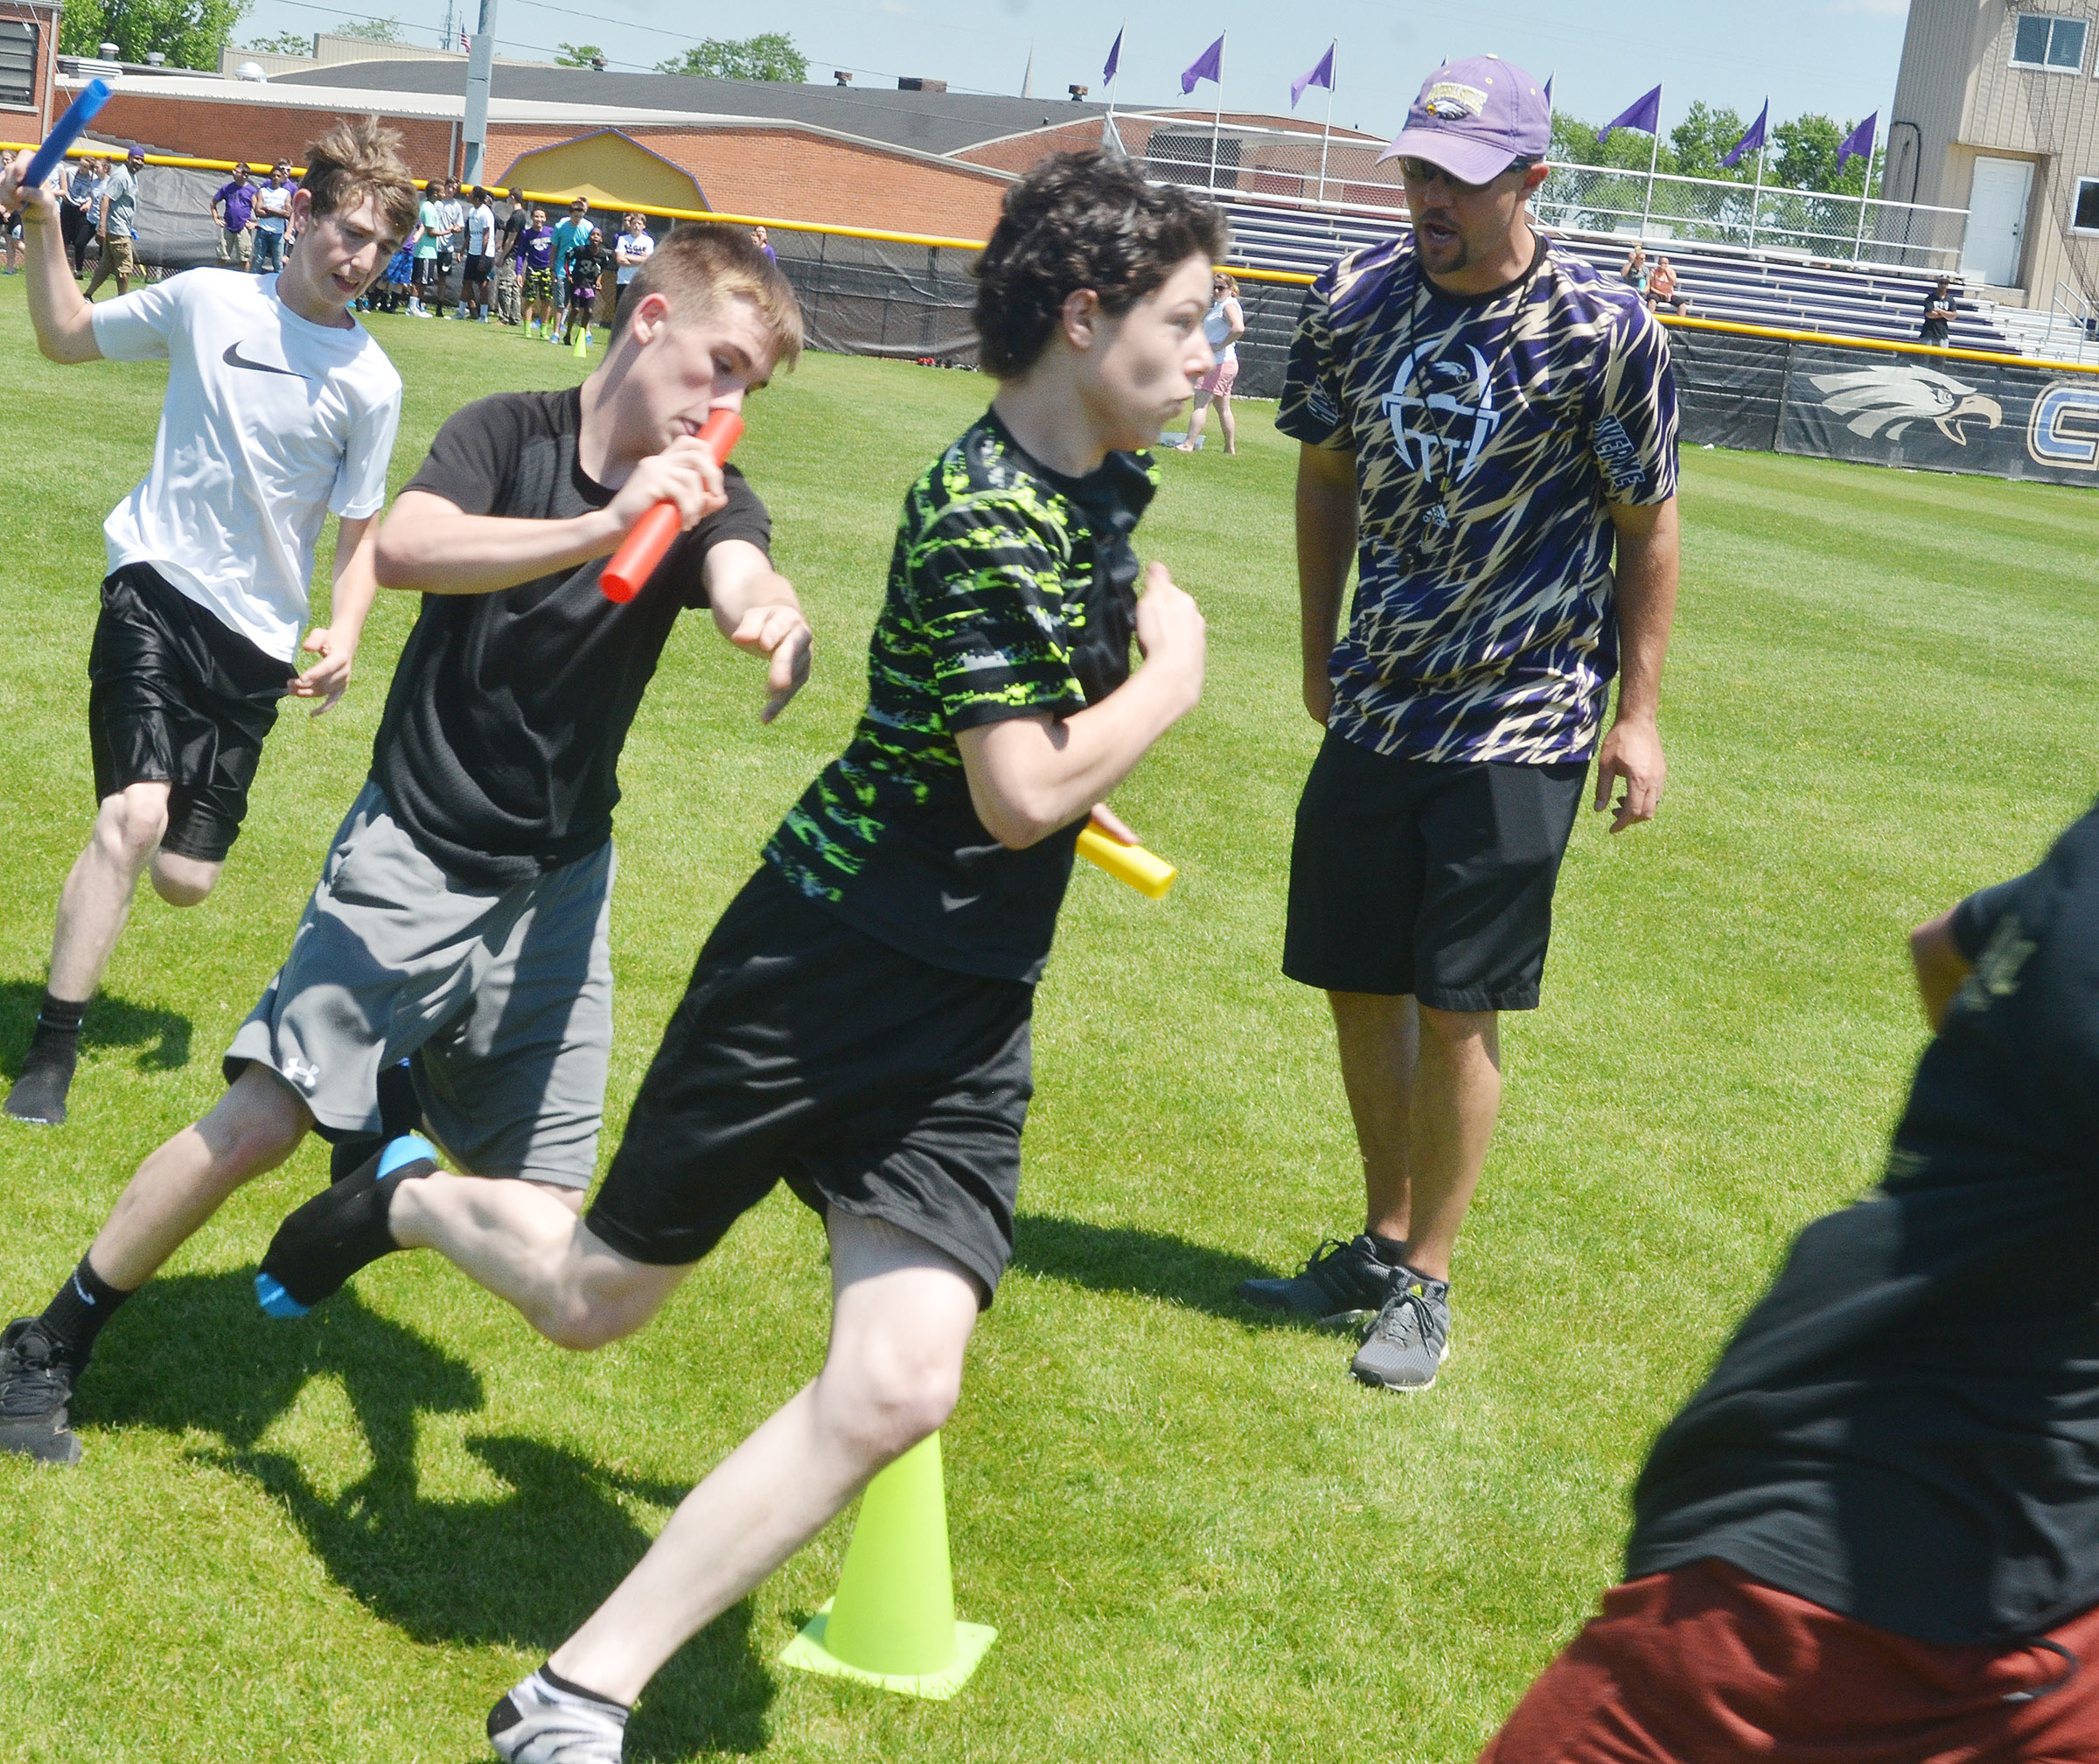 From left, CMS seventh-graders Waylon Franklin, Levi Sallee and C.J. Adams run in the 4x4 relay race.